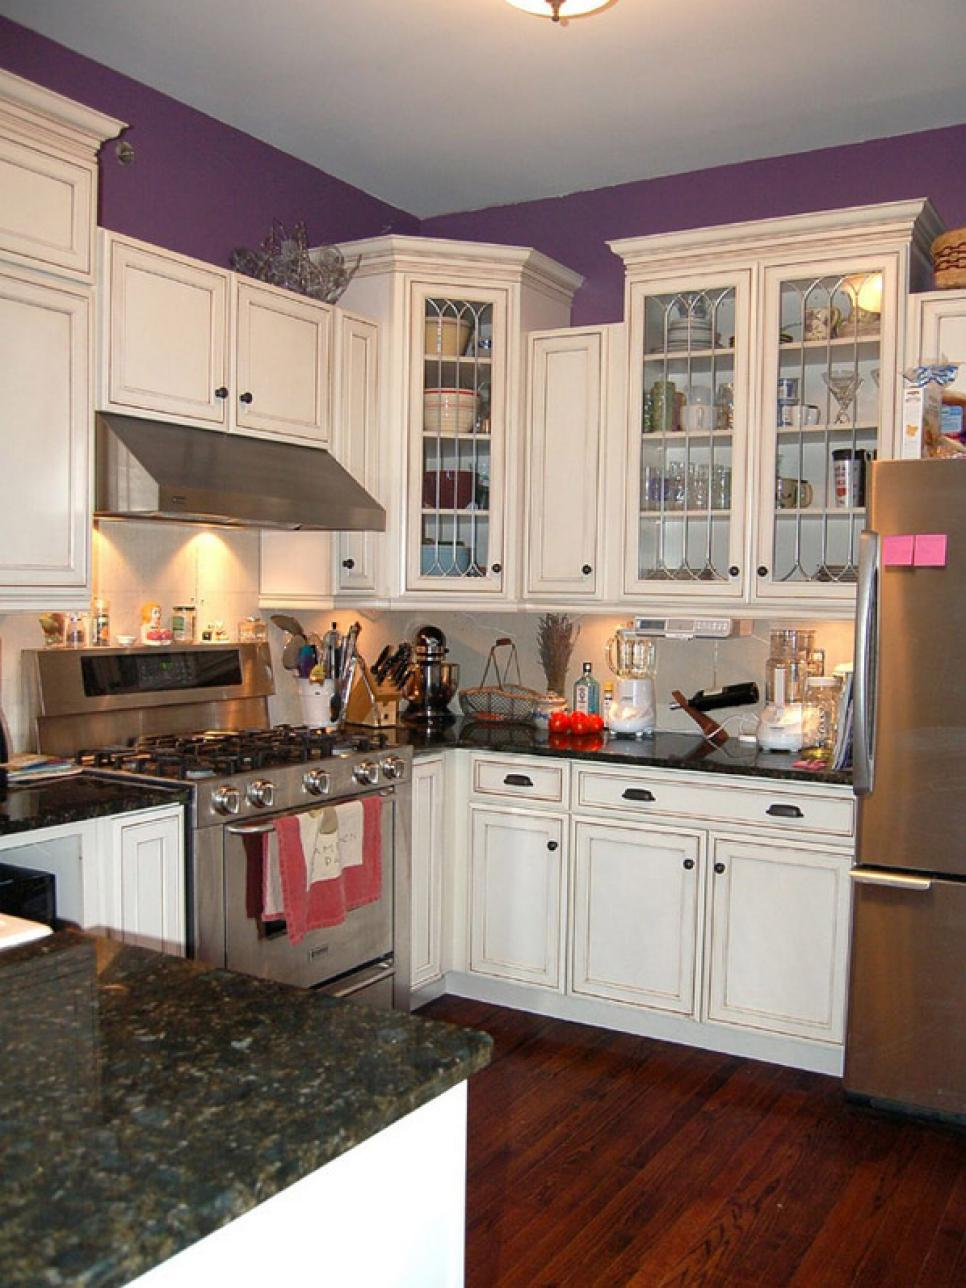 Small kitchen design ideas and solutions hgtv for Kitchenette layout